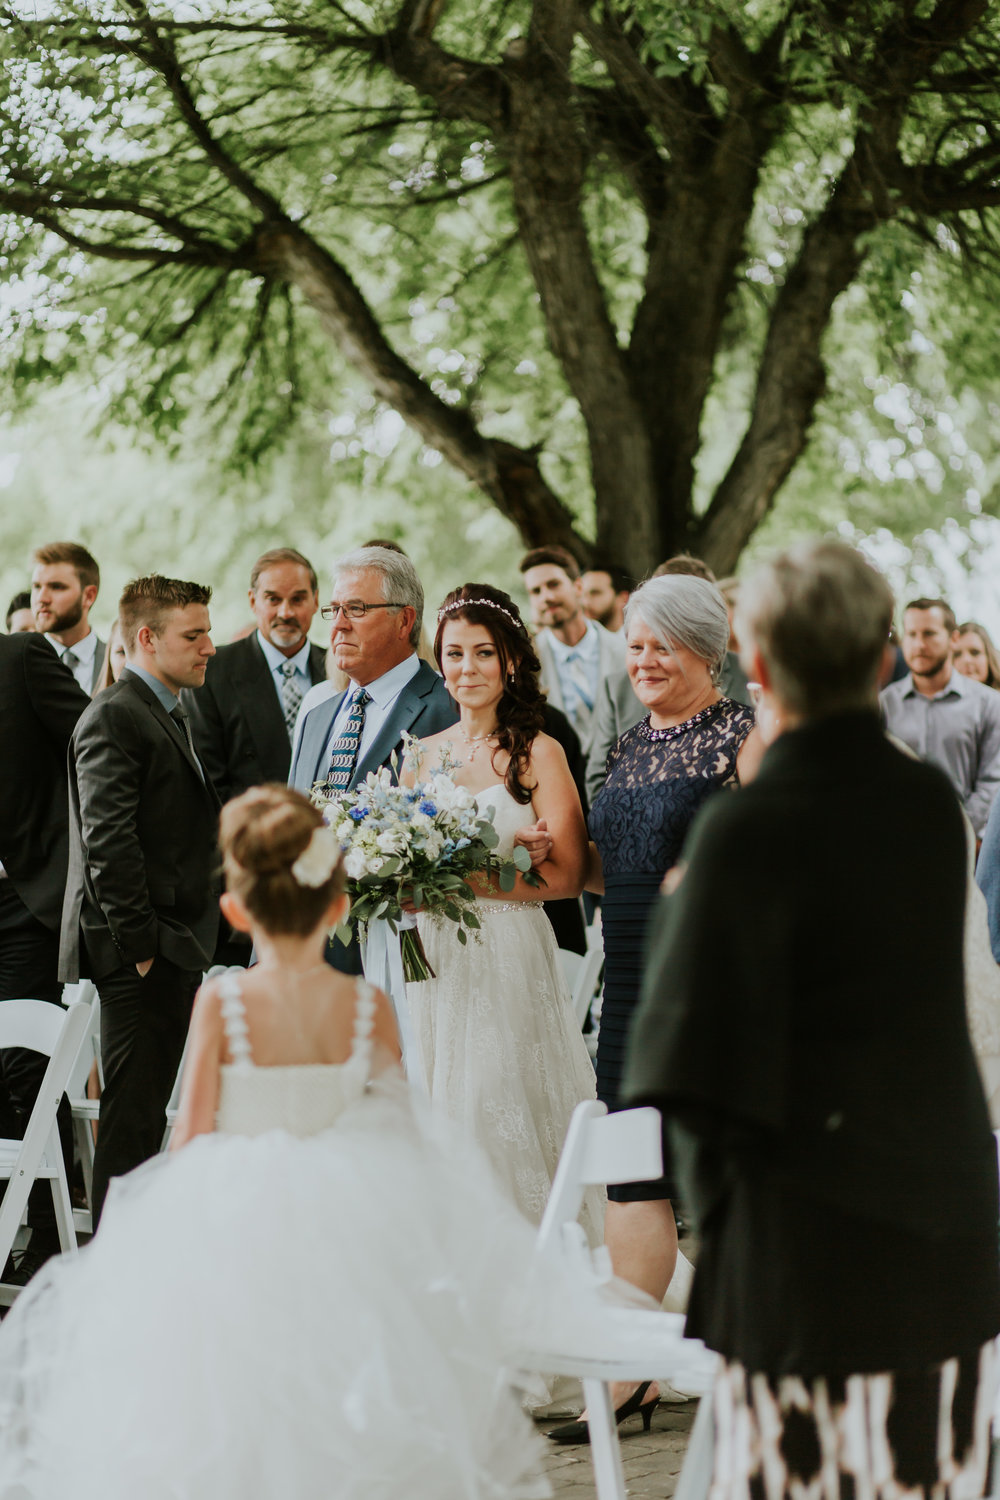 Jake and Rebecca 2 - Ceremony -53.jpg